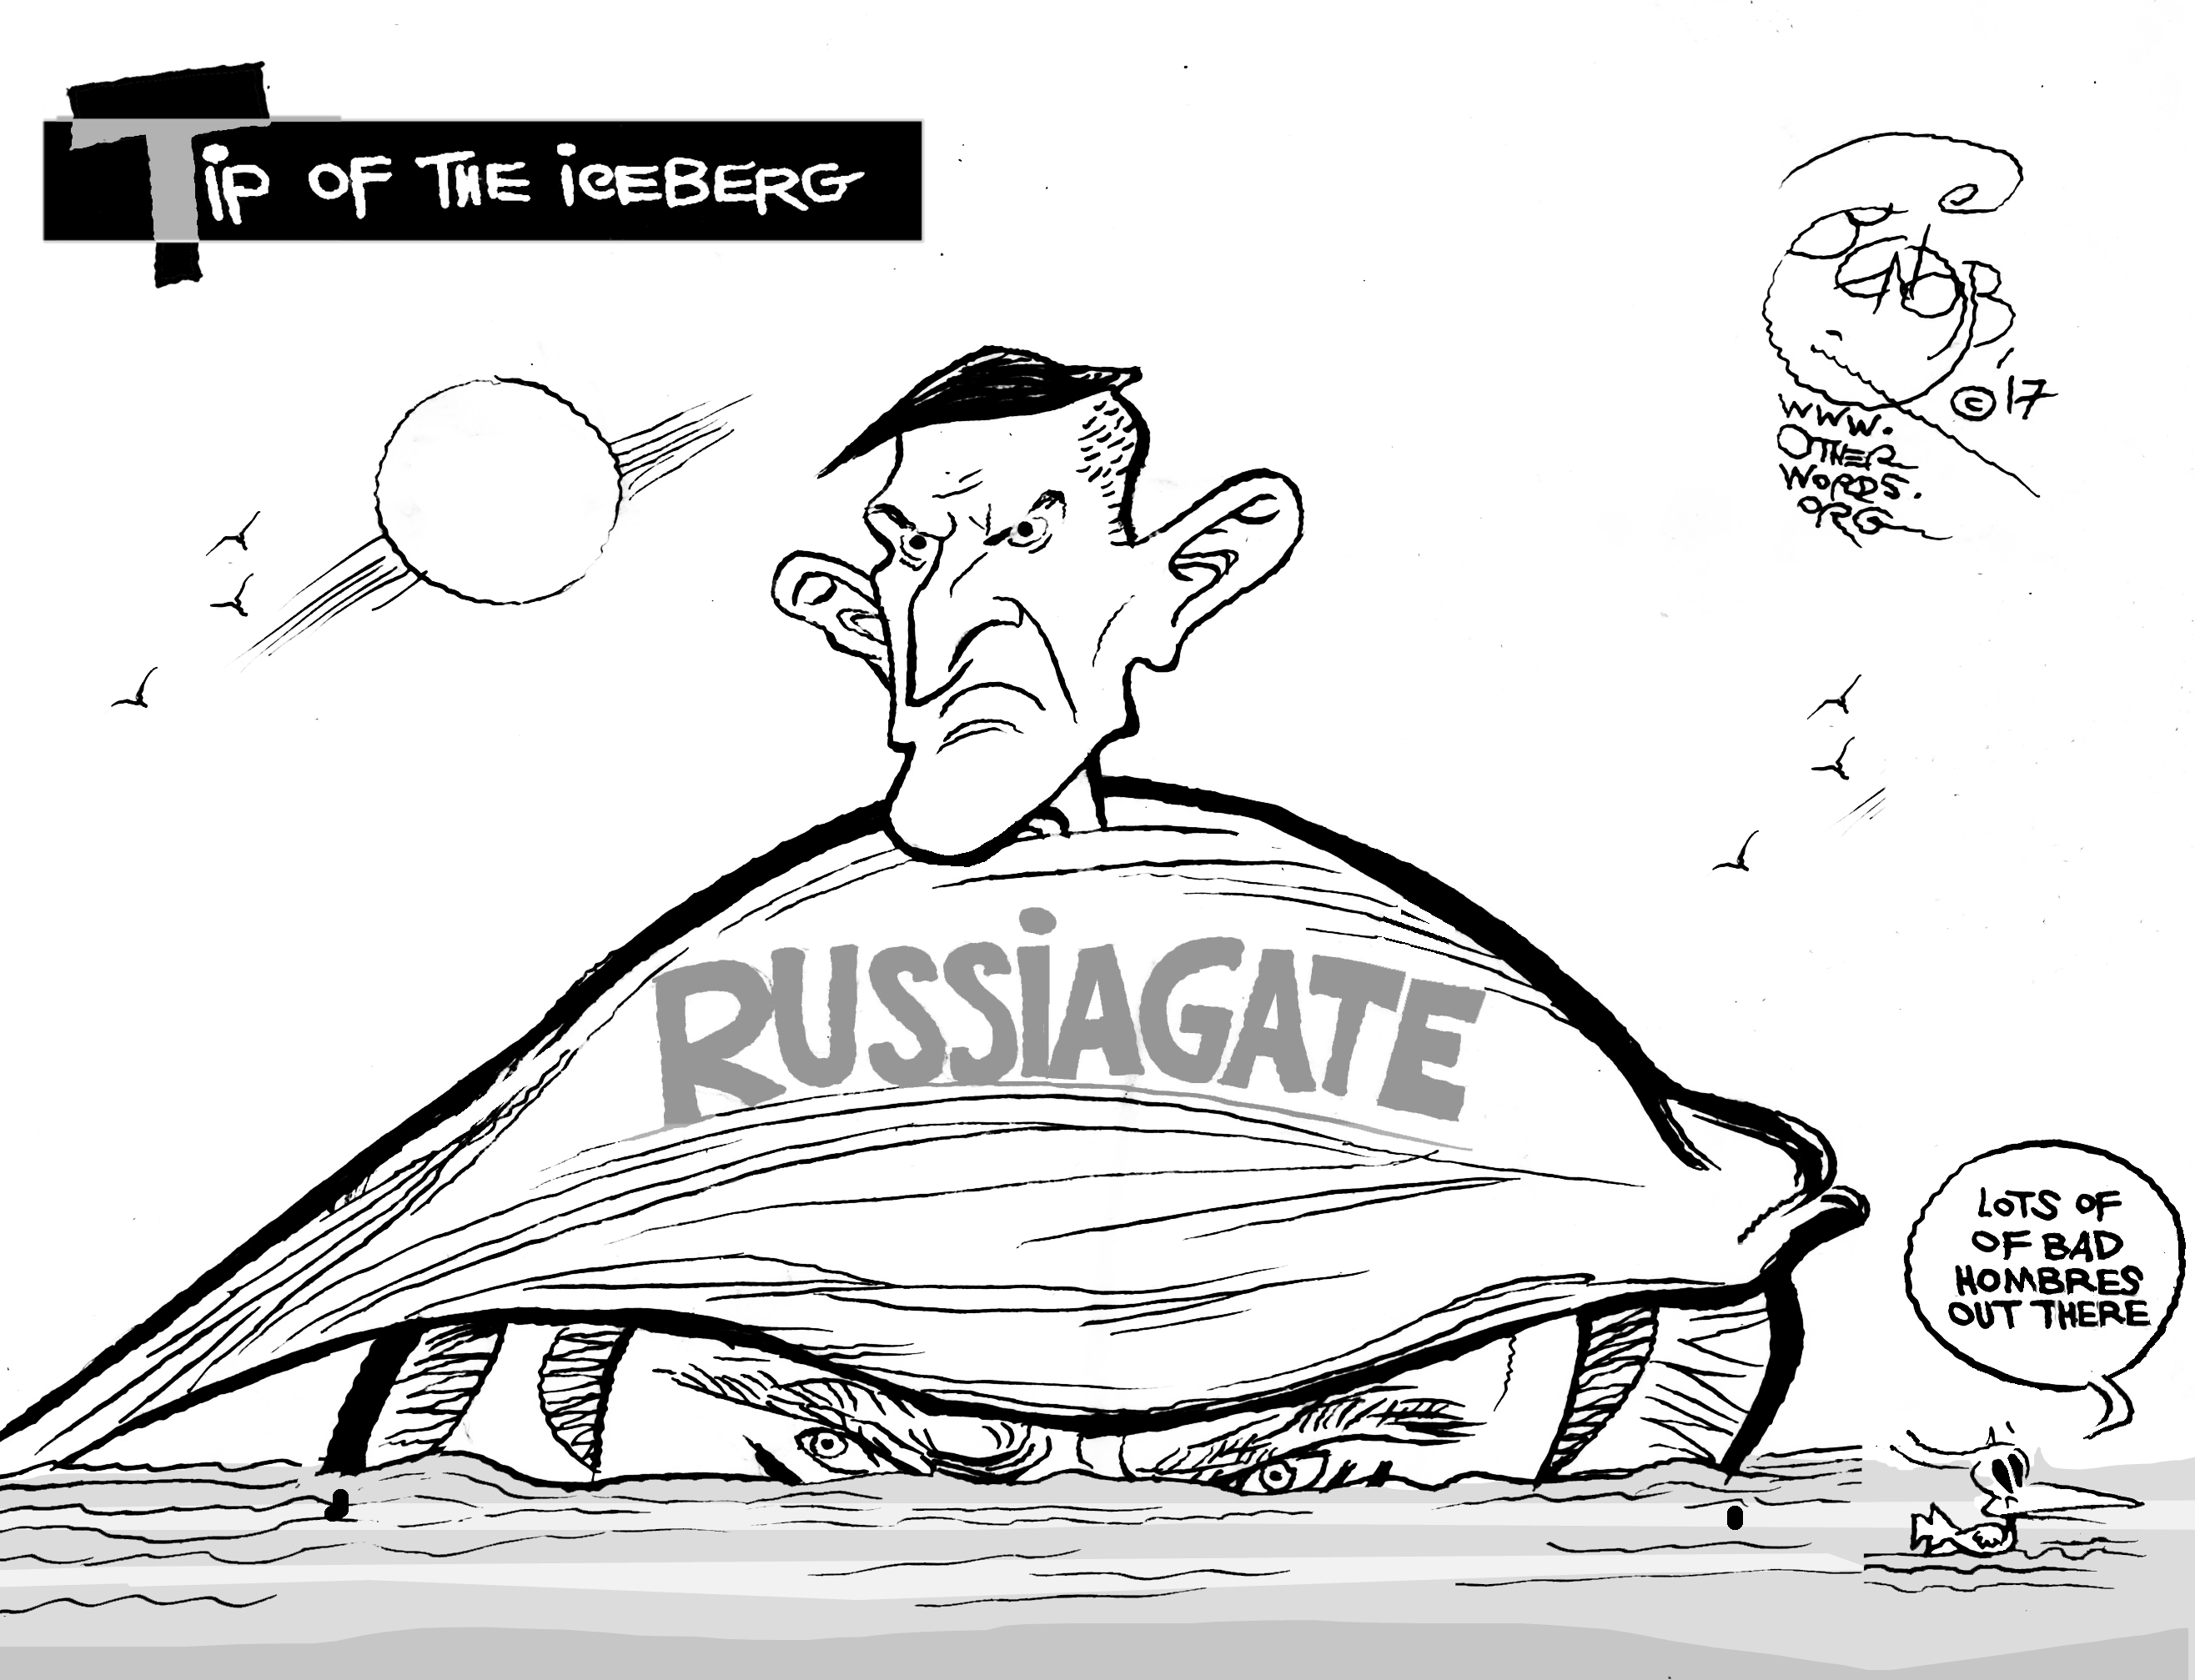 Image result for Russia-gate CARTOON